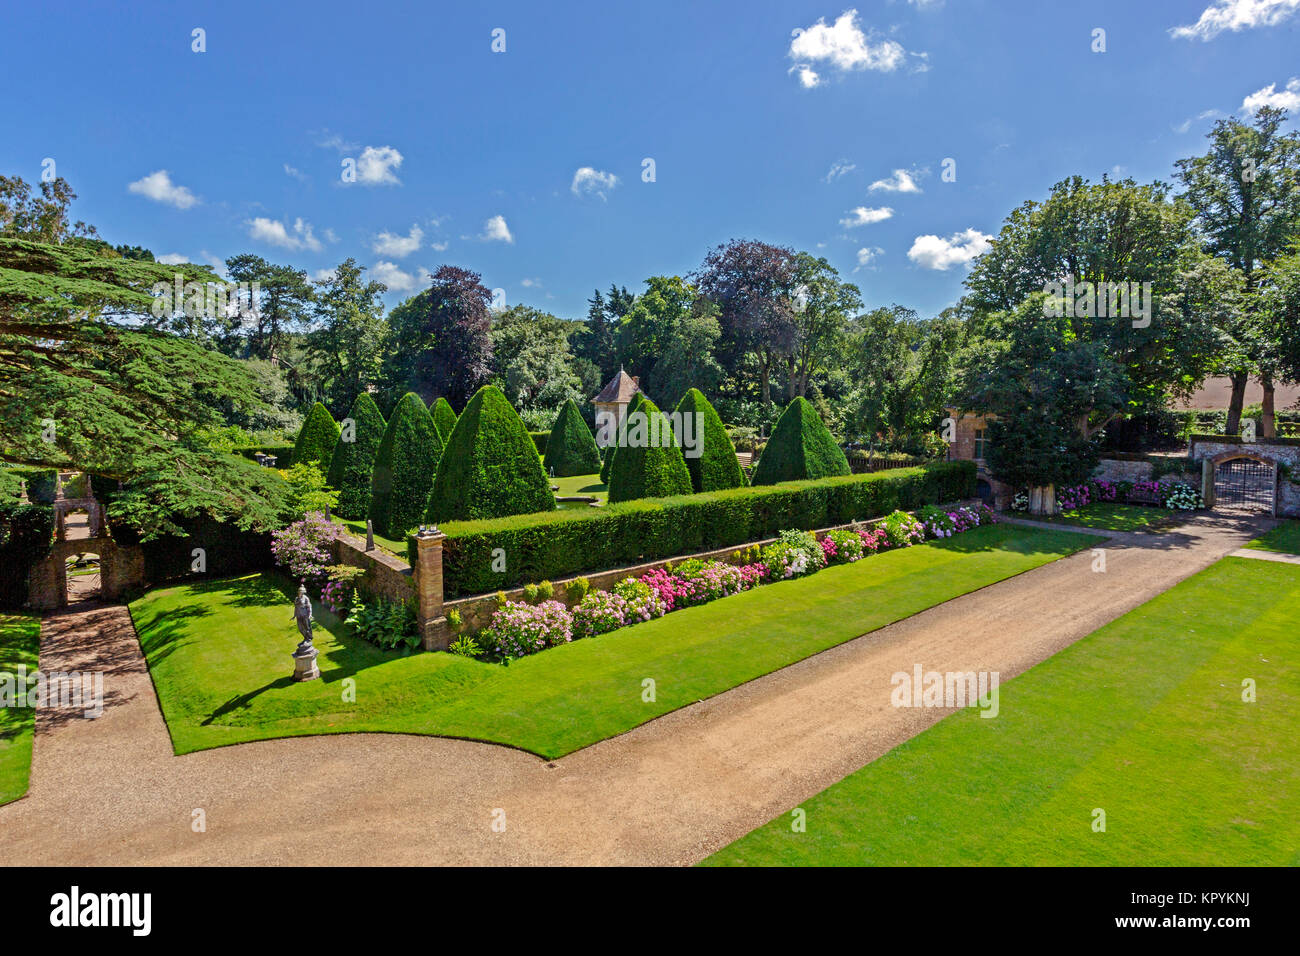 The giant yew pyramids in the Great Court at Athelhampton House, Puddletown, Dorset, England, UK Stock Photo